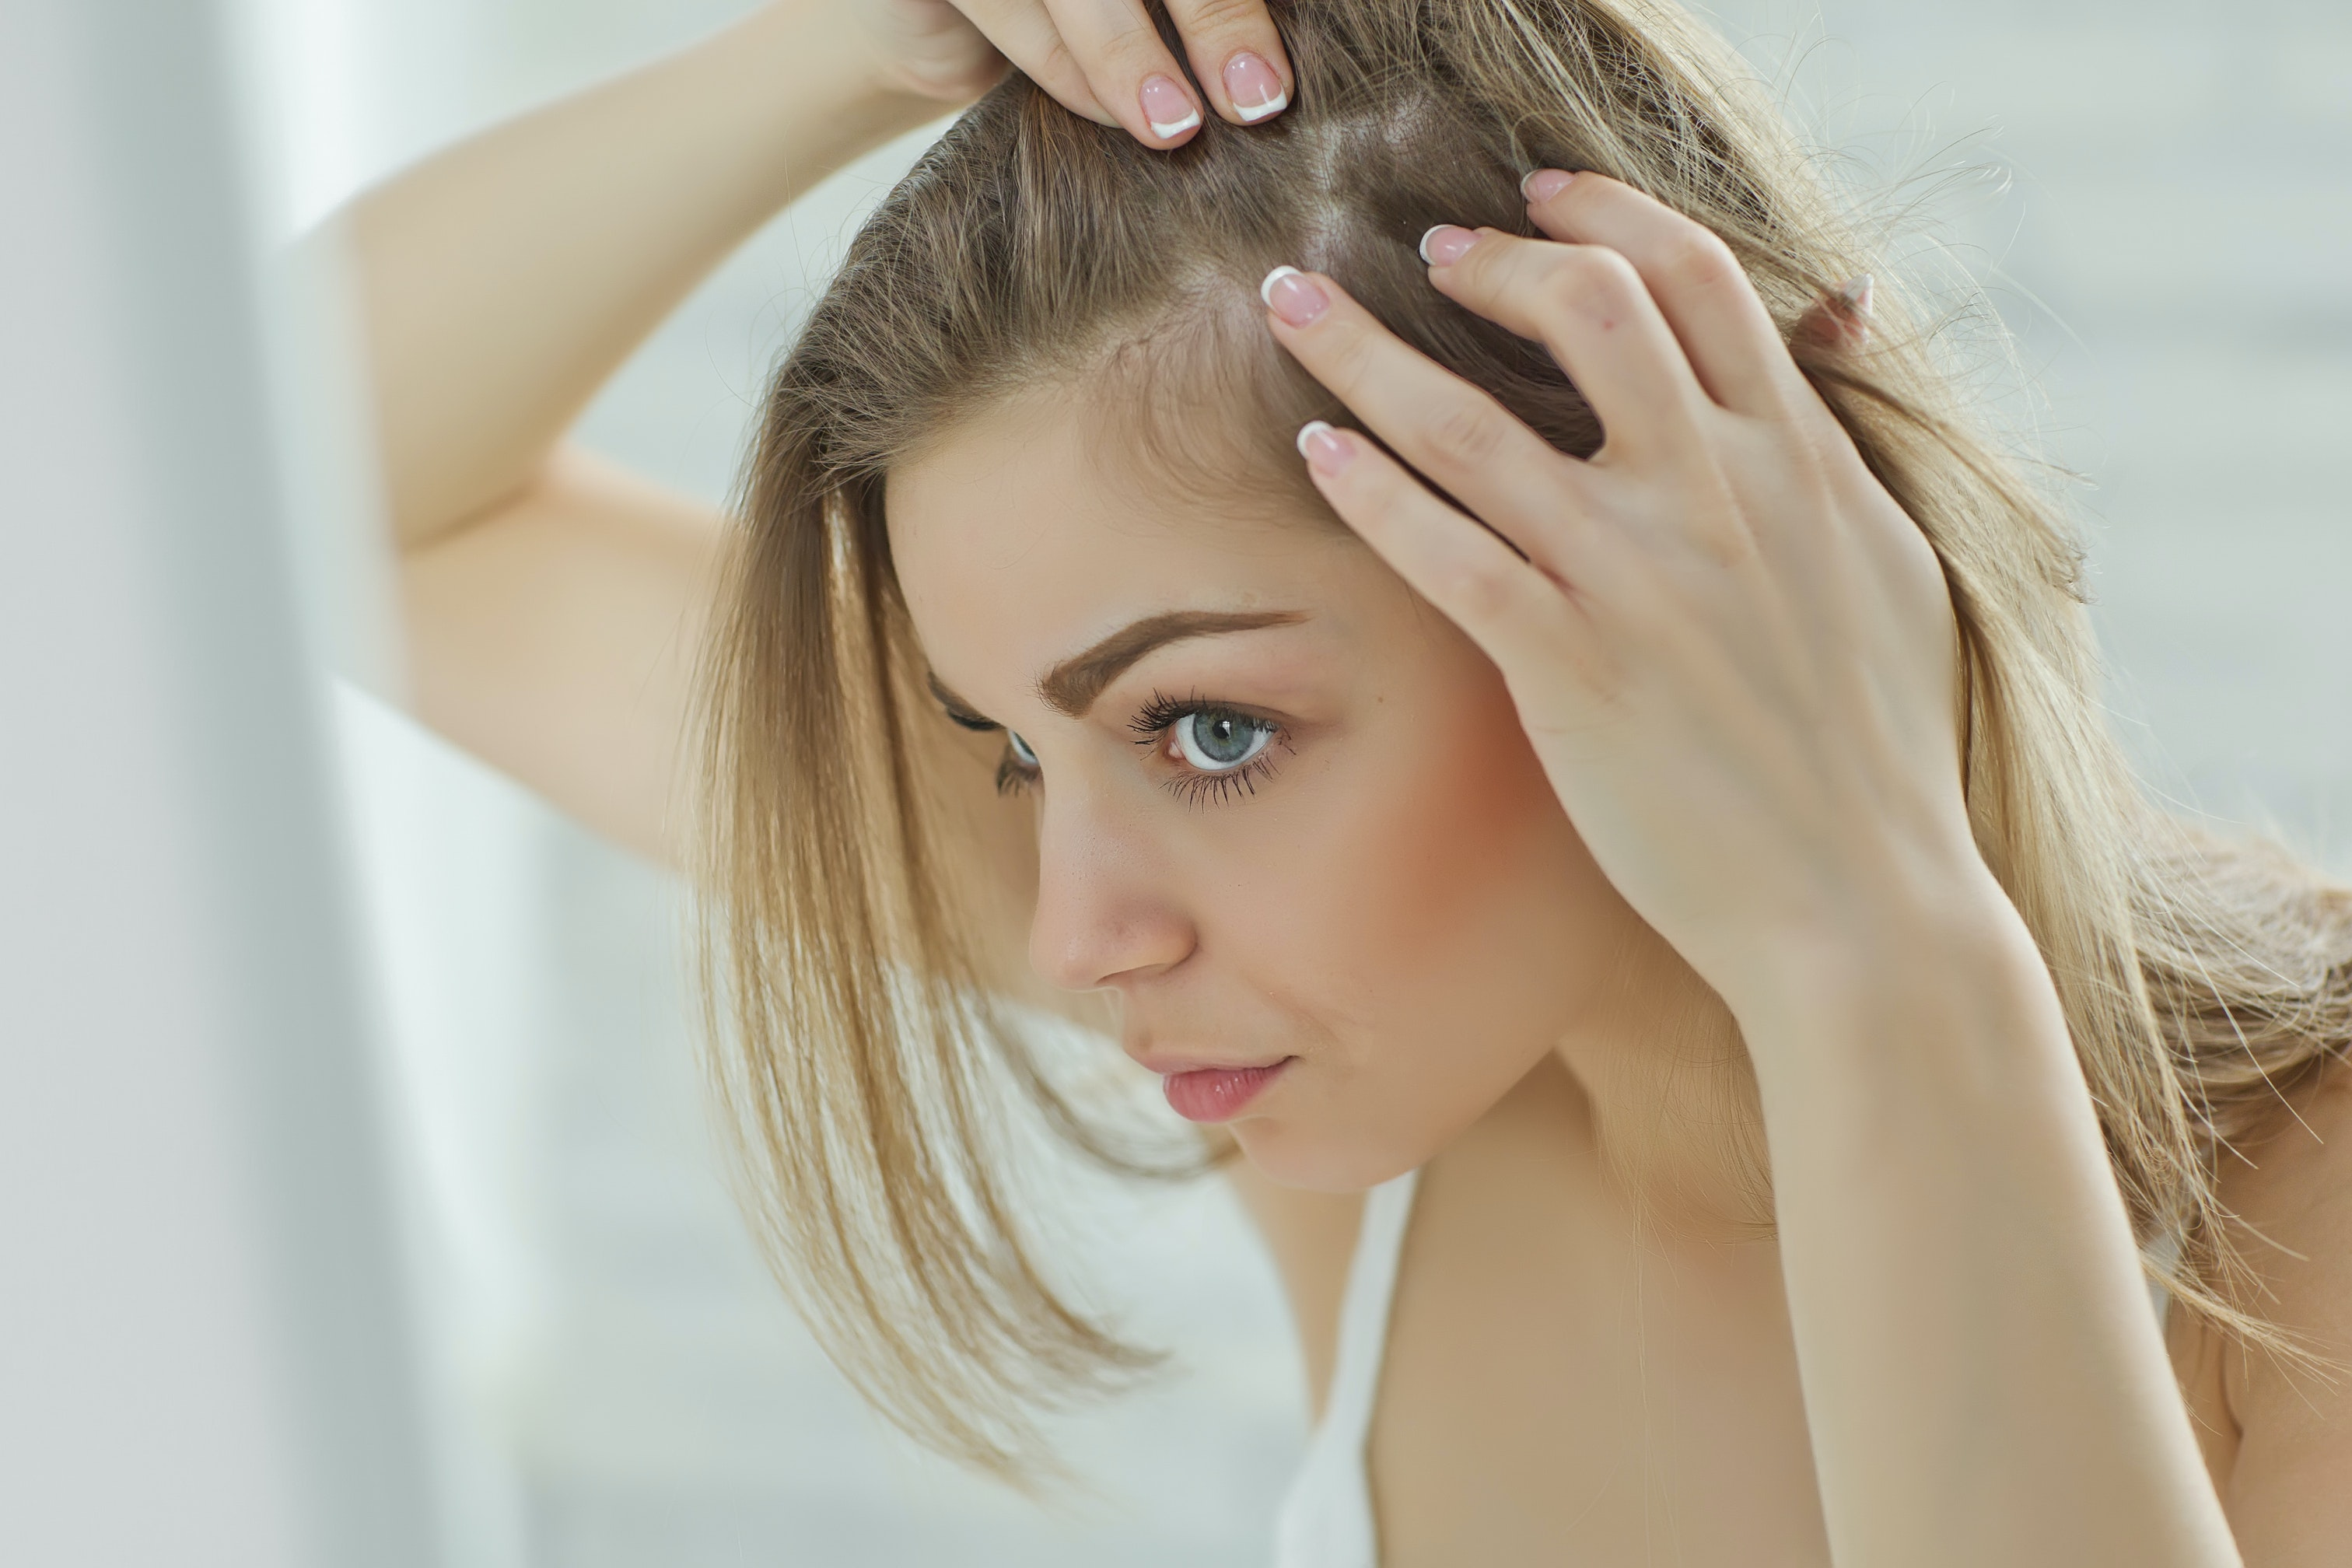 An image depicting a person suffering from hard scalp bump symptoms